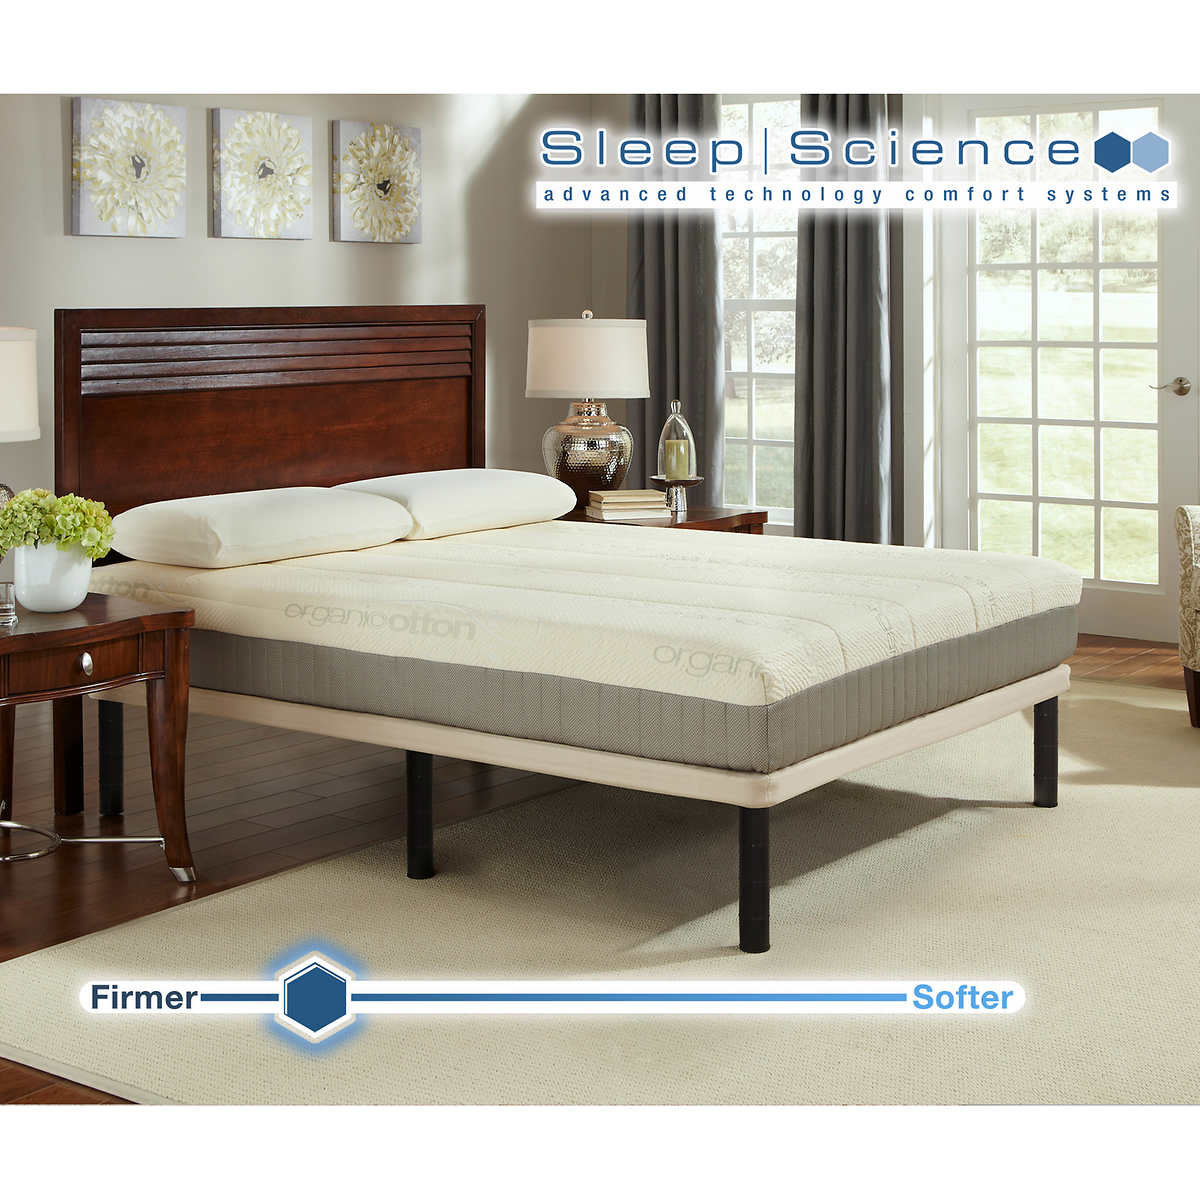 Sleep Science 9 Natural Latex Queen Mattress With Foundation Medium Firm